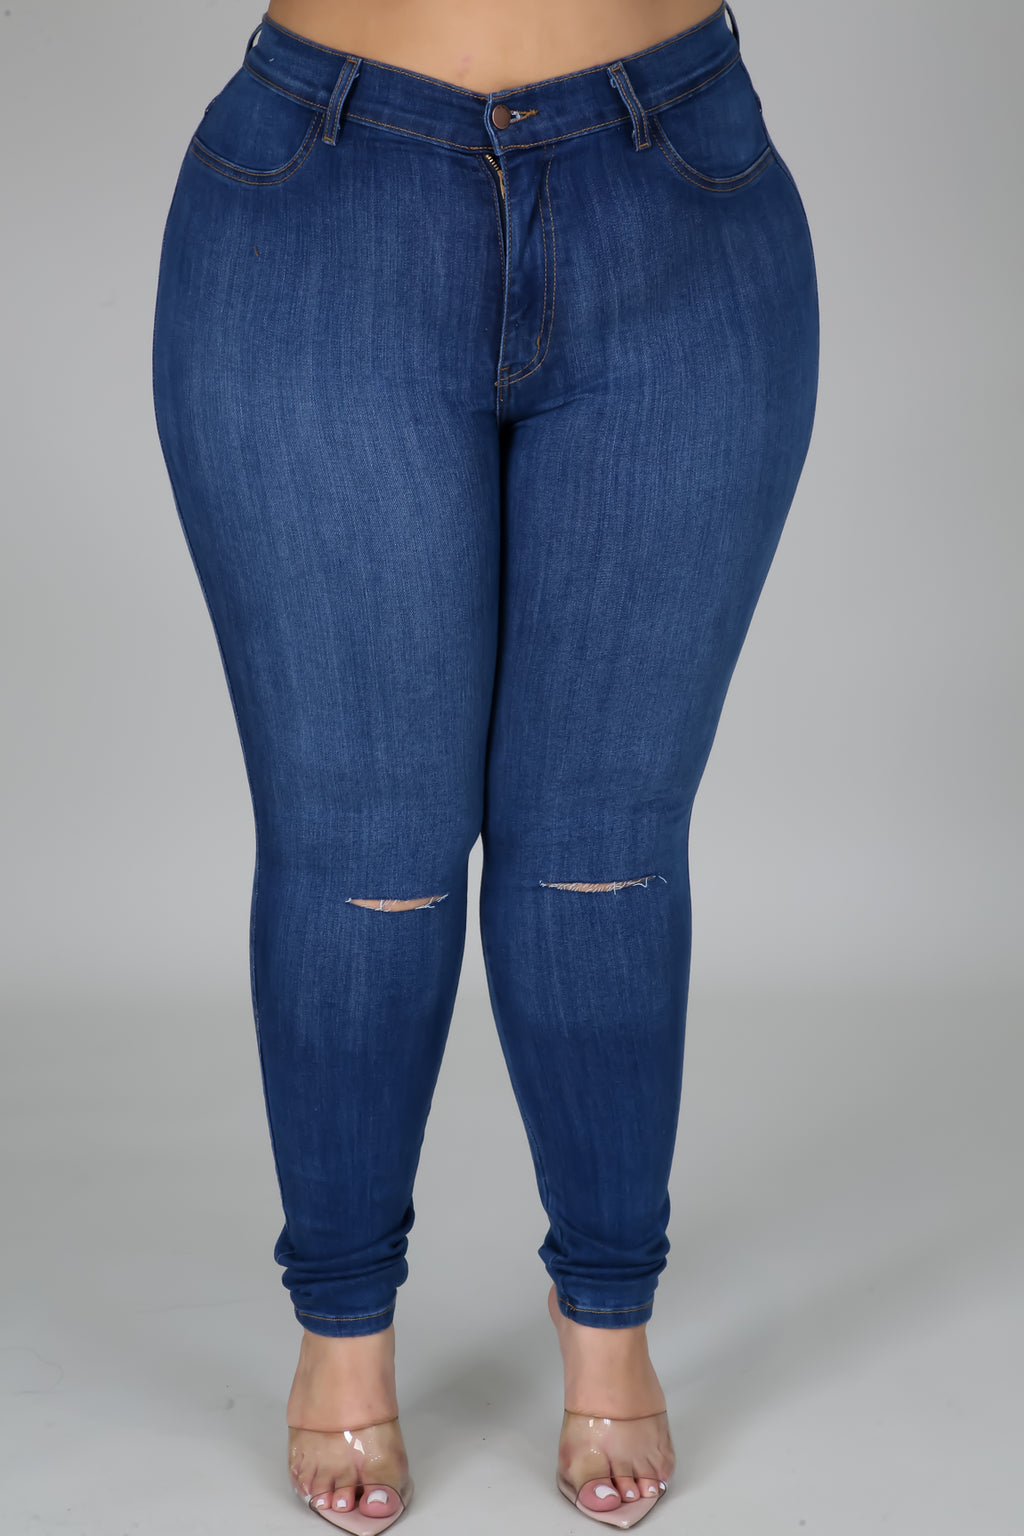 Knee Slit Denim Jeans